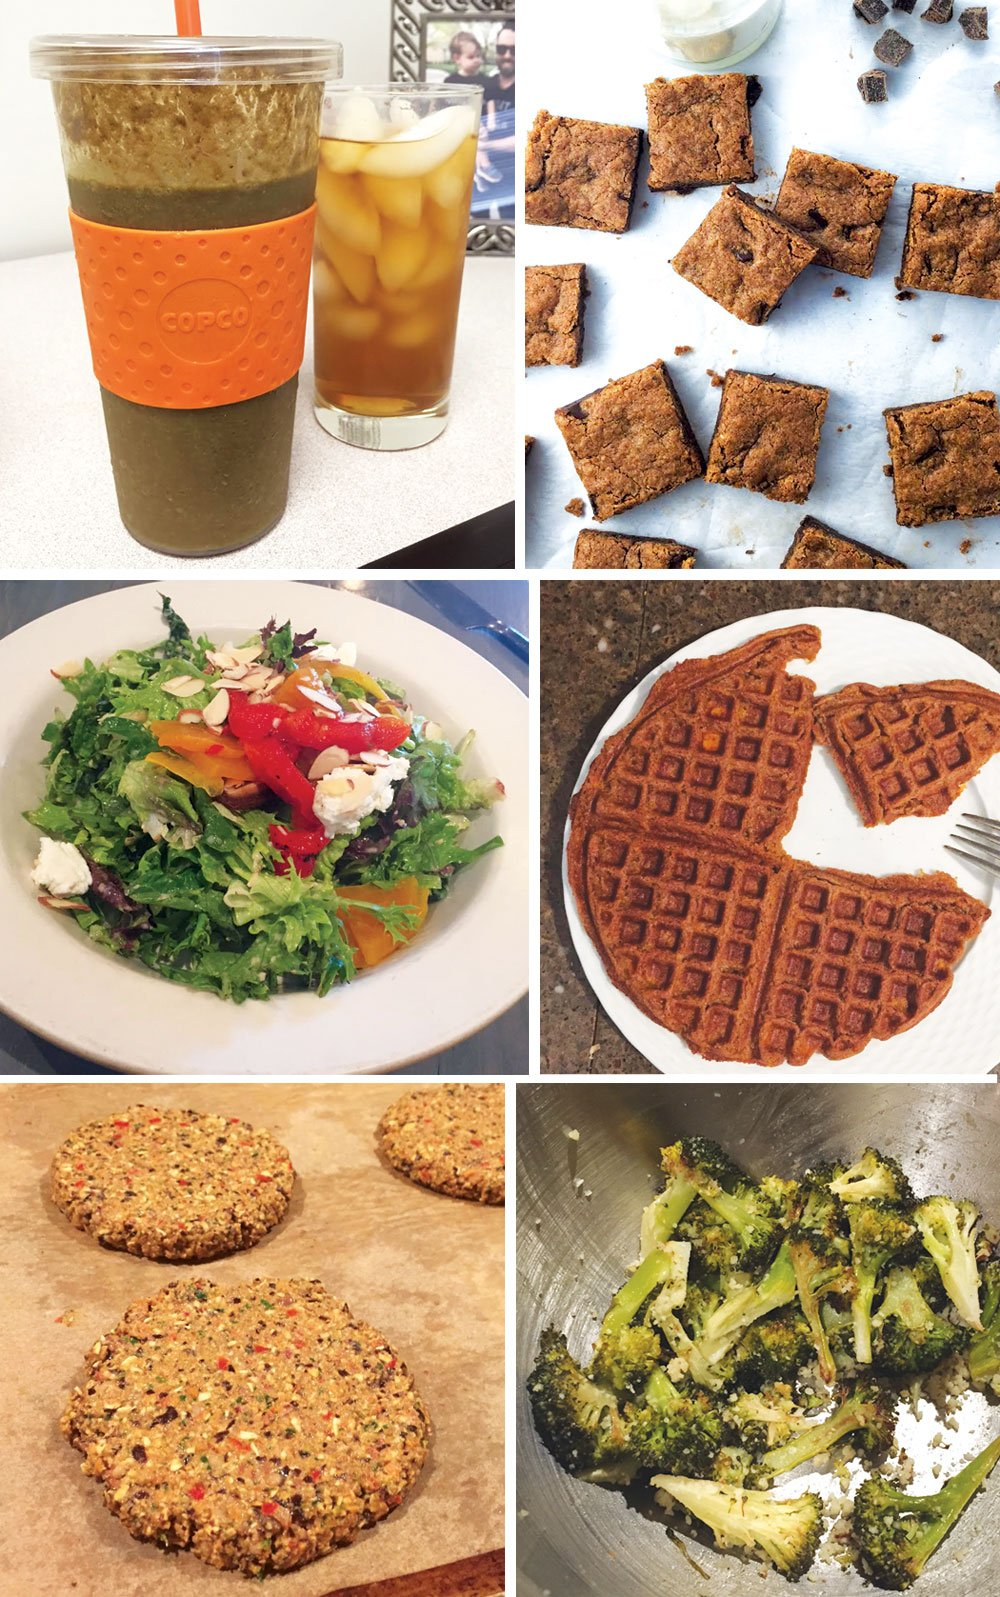 smoothie in a cup, almond butter blondies, salad in a bowl, freezer waffles, veggie burger, and broccoli